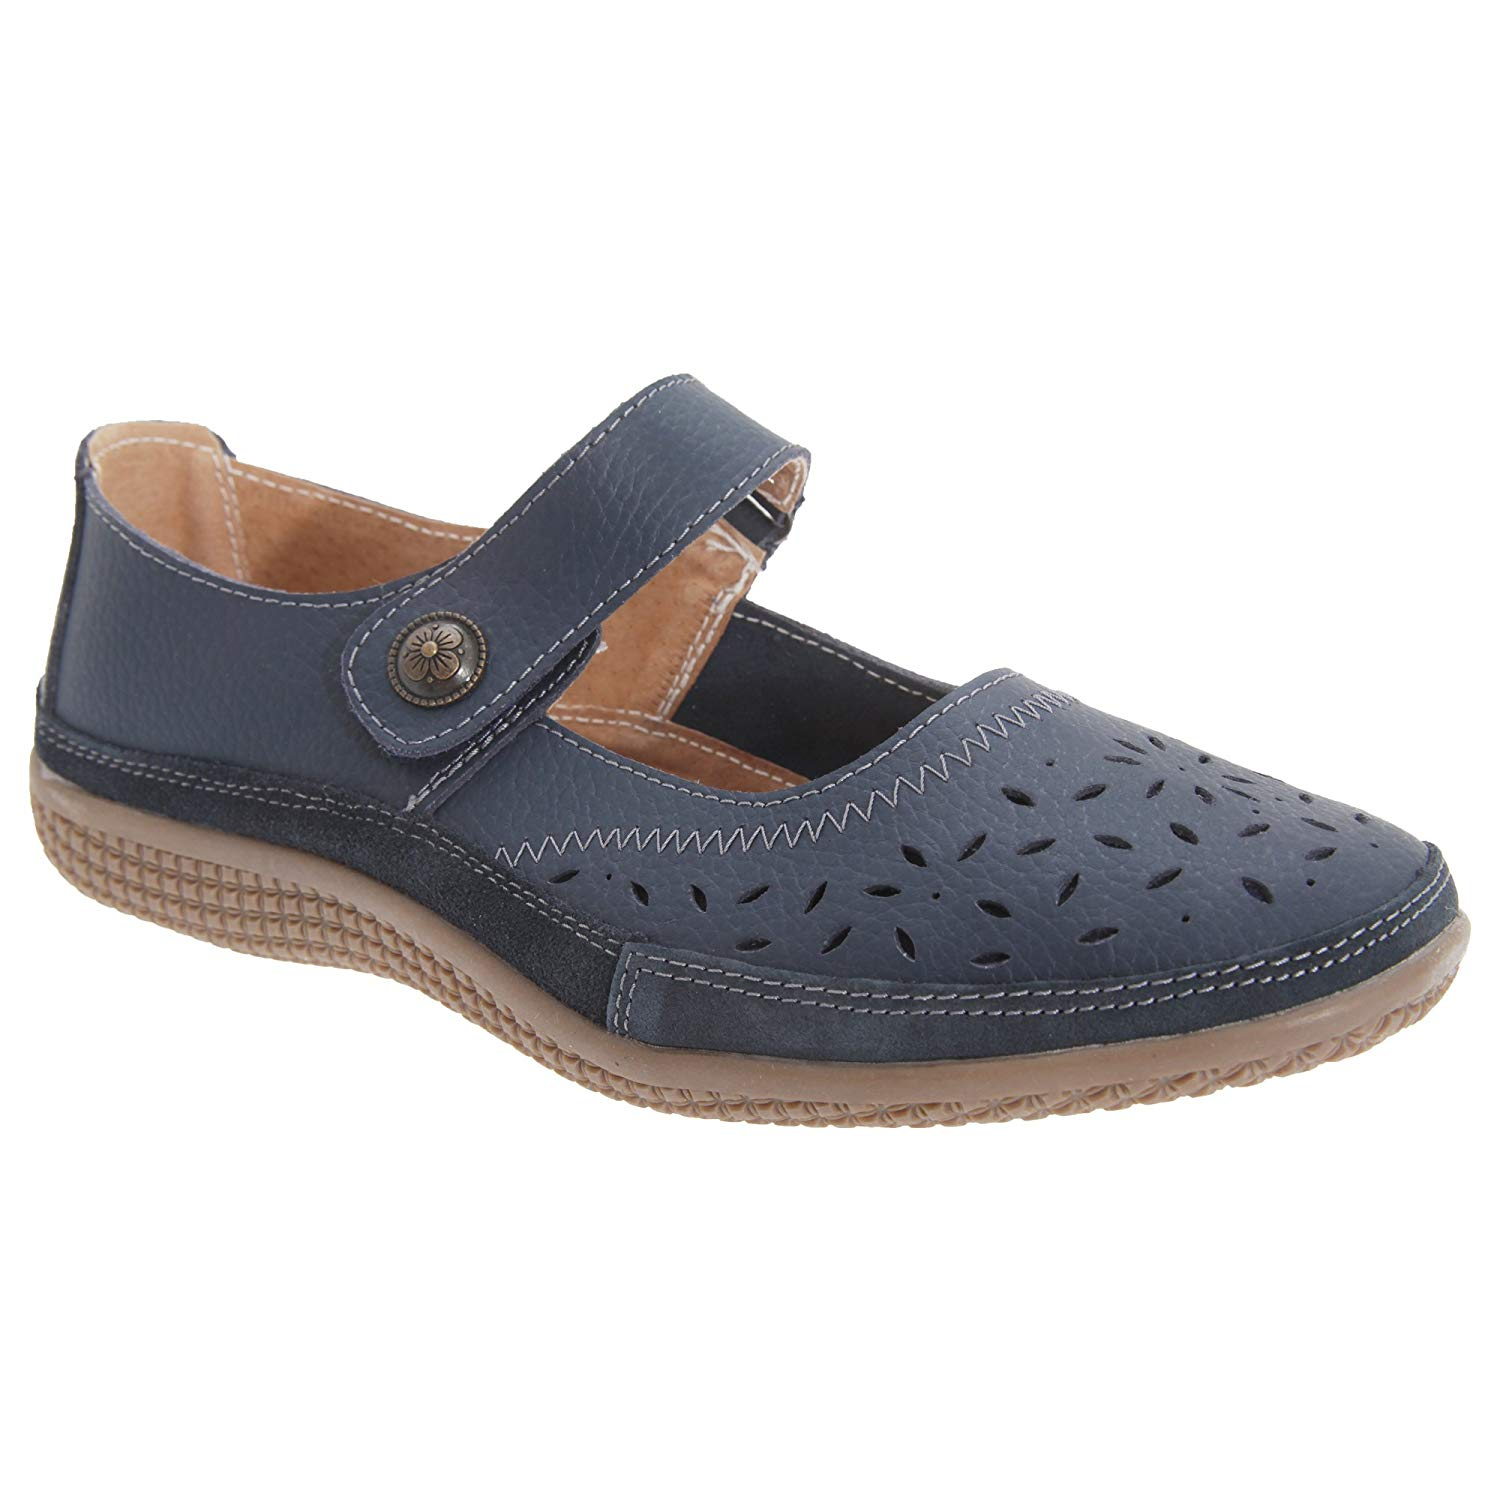 cd6c72ff3c7 Cheap Wide Fitting Shoes For Ladies, find Wide Fitting Shoes For ...